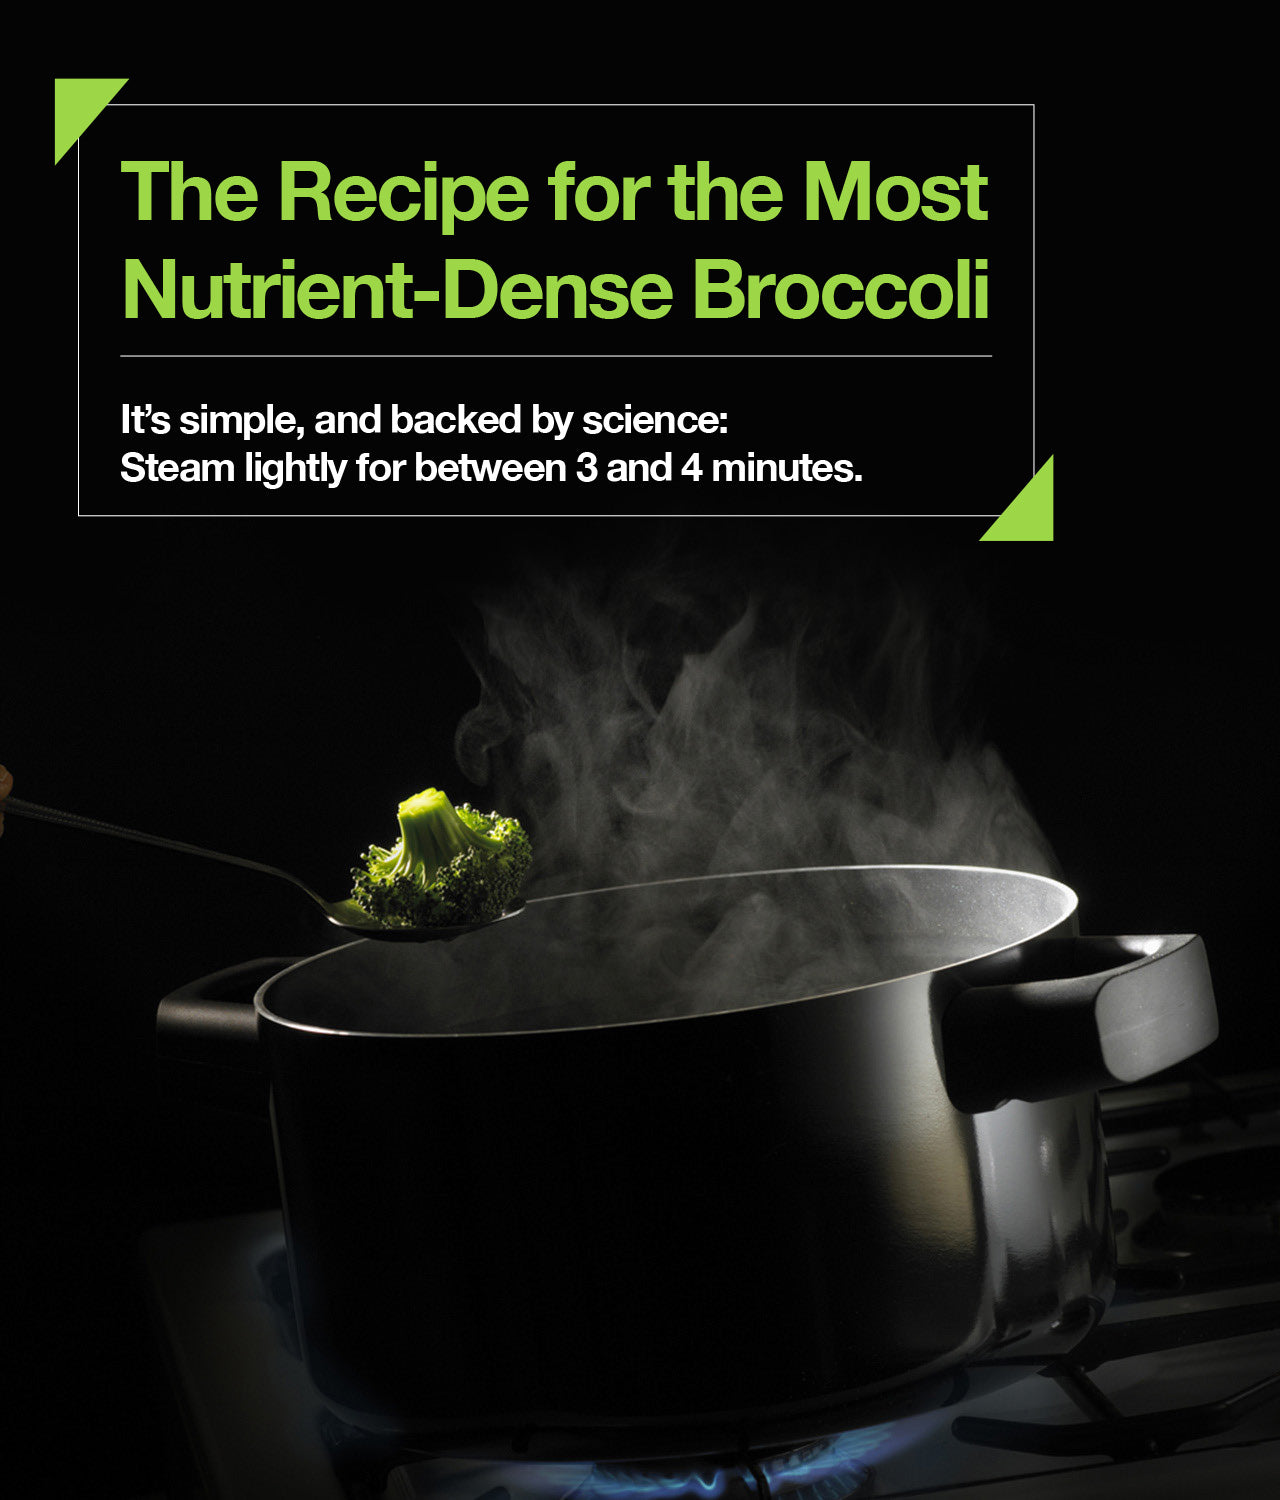 The Recipe for the Most Nutrient-Dense Broccoli